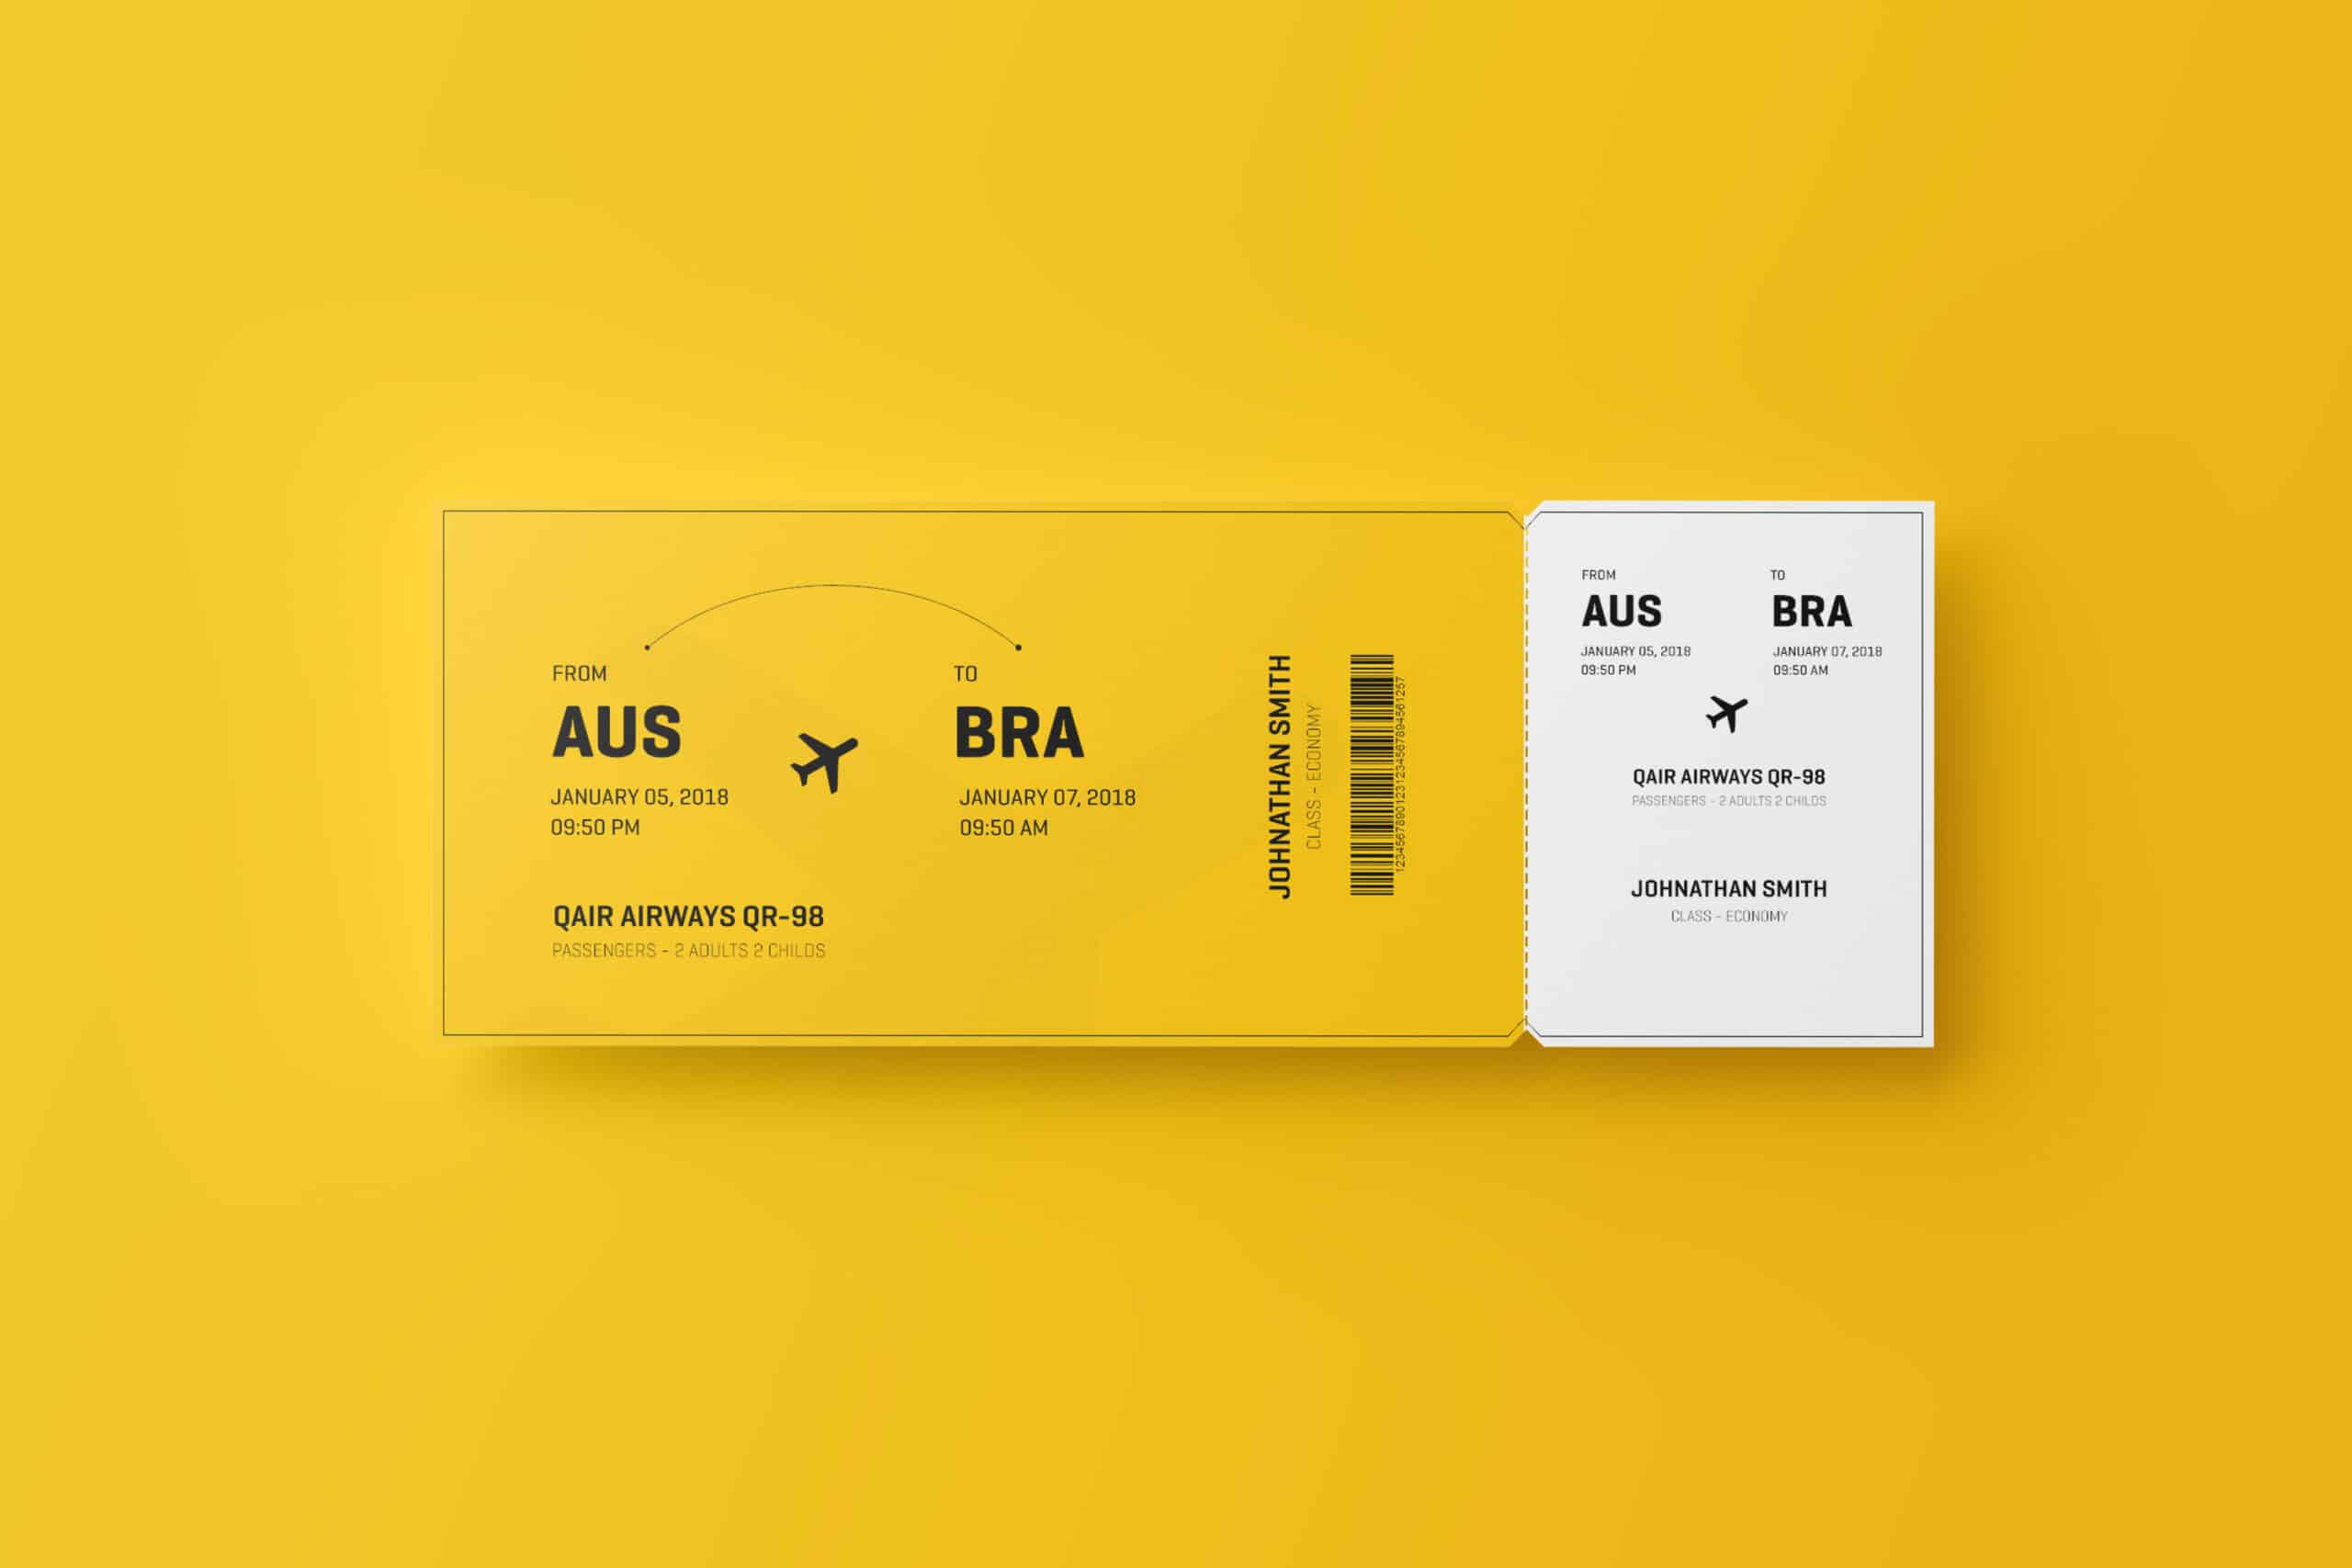 Free High Res Flight Ticket Mockup In PSD DesignHooks